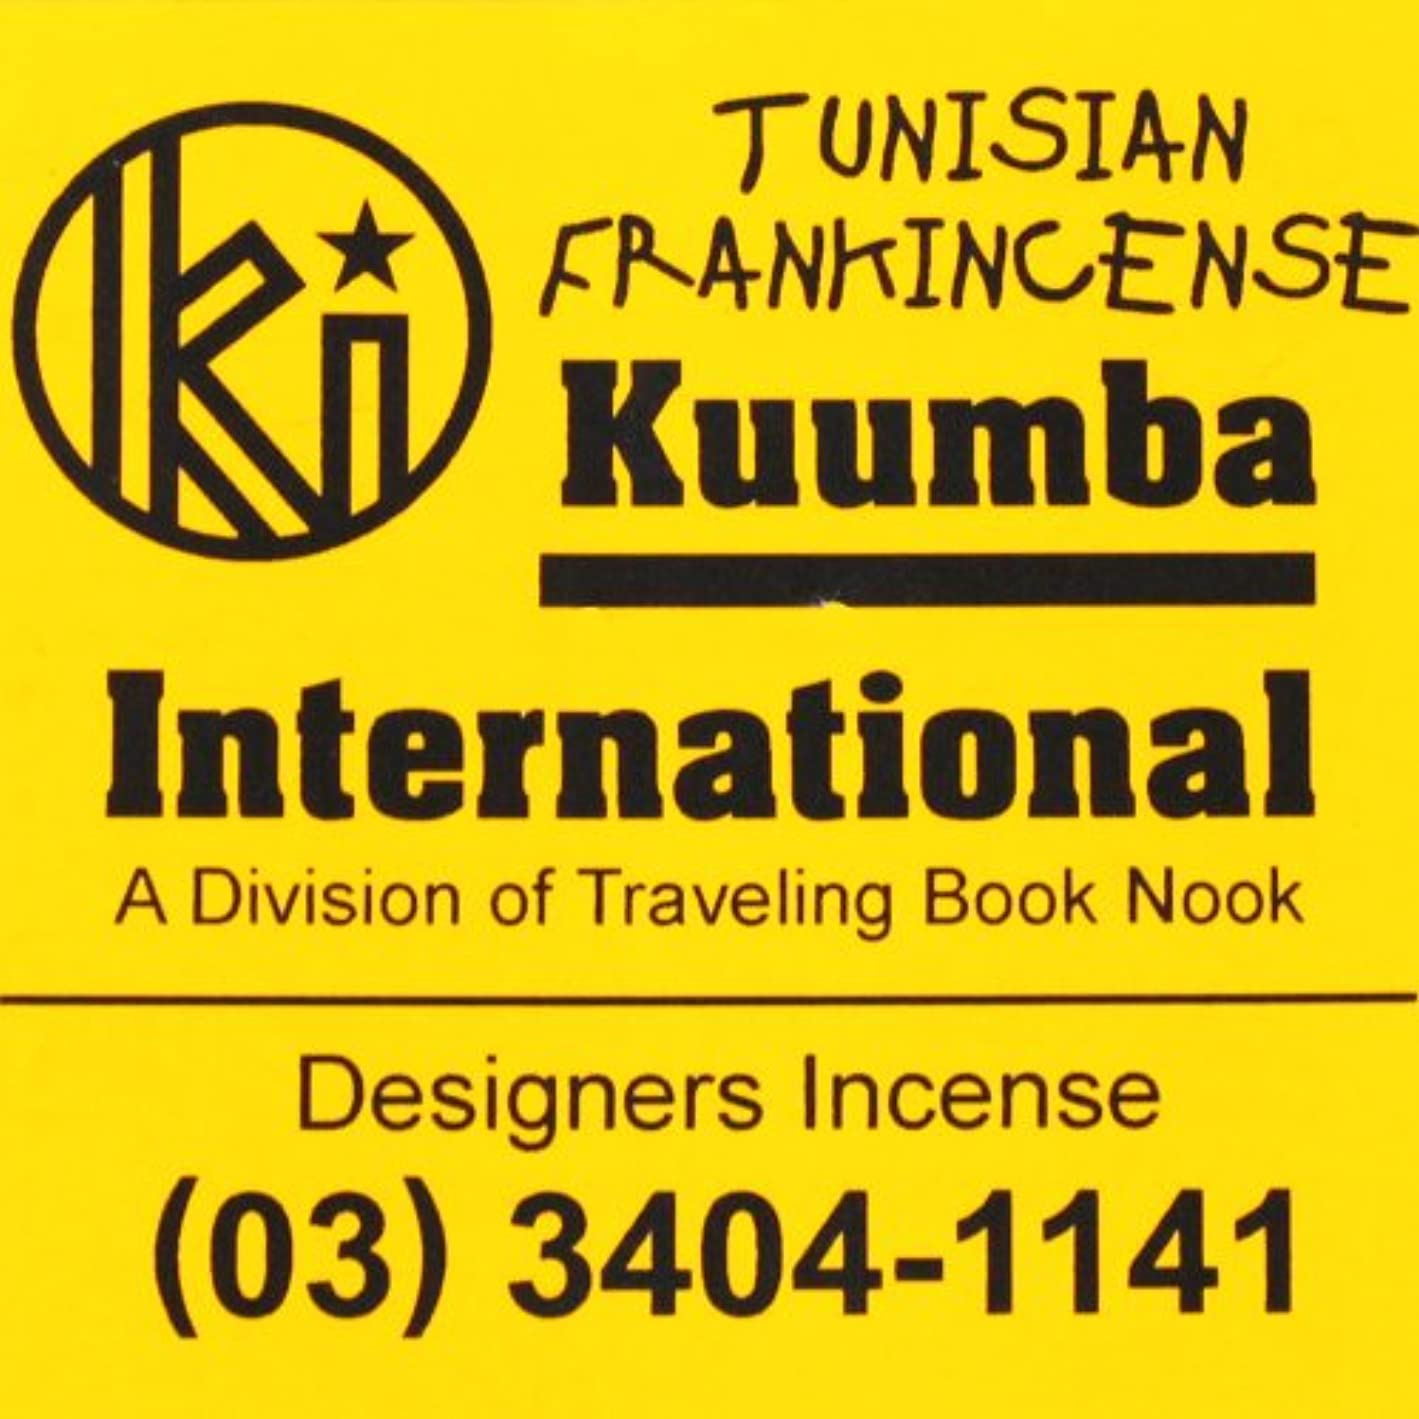 アーチ凝縮するビジター(クンバ) KUUMBA『classic regular incense』(TUNISIAN FRANKINCENSE) (Regular size)